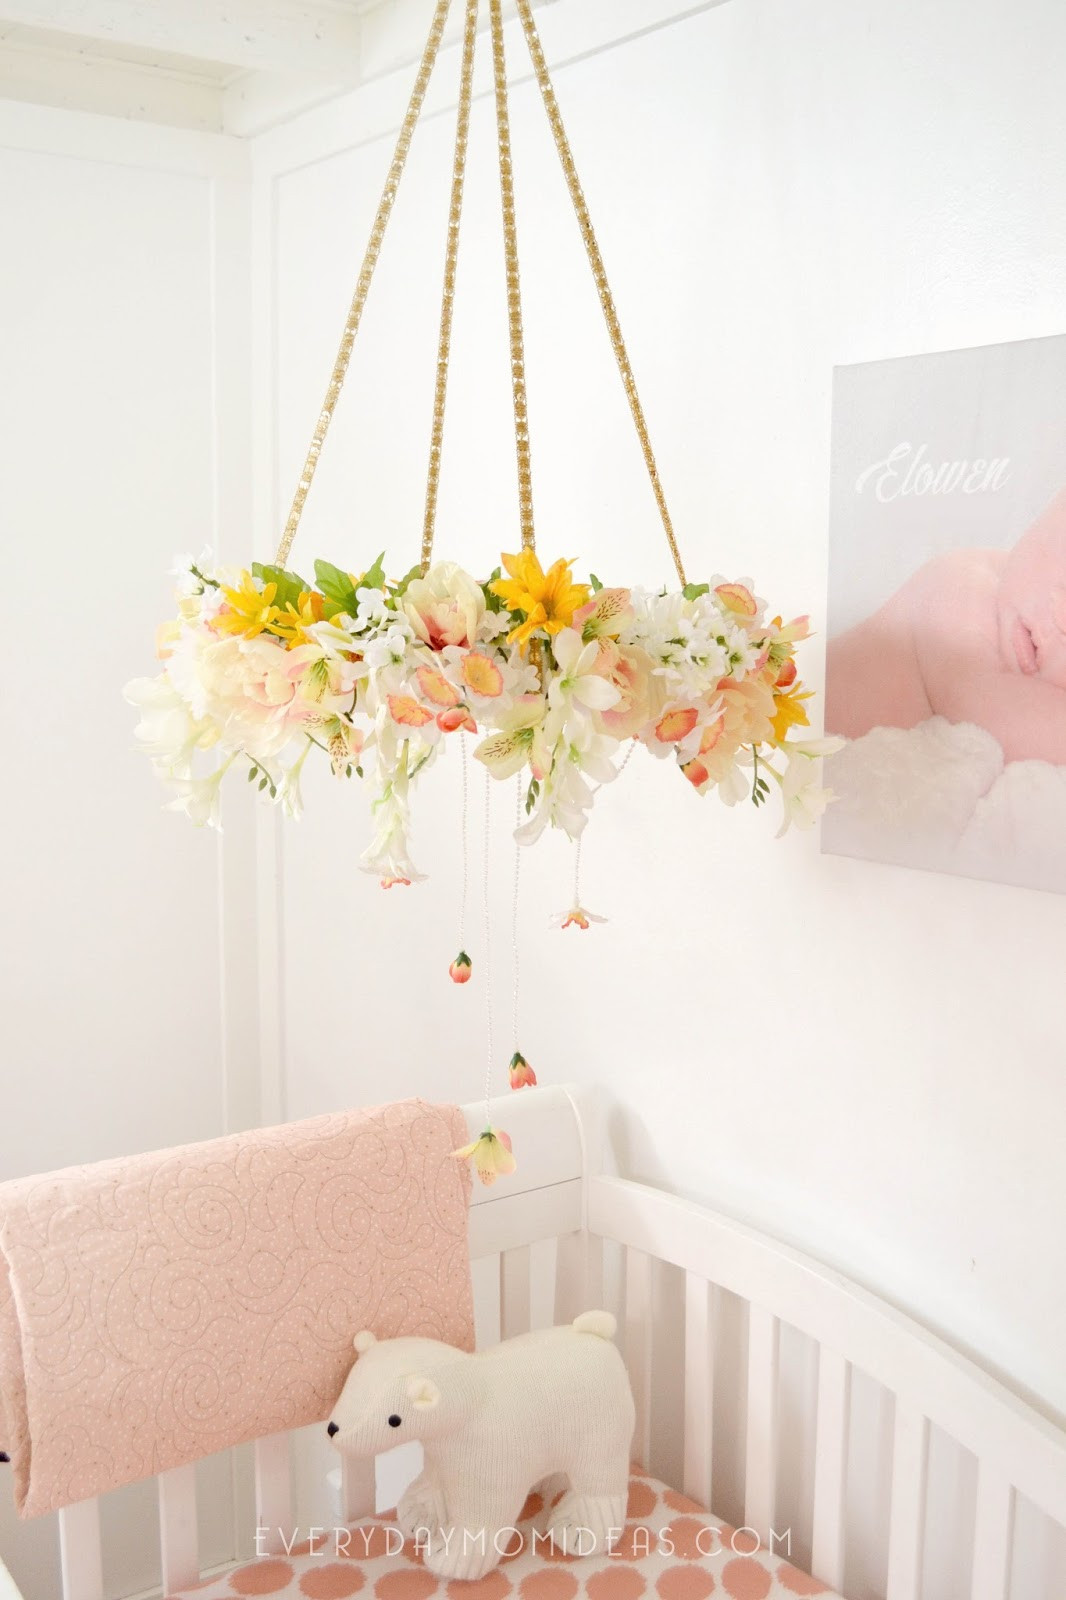 Best ideas about DIY Crib Mobiles . Save or Pin DIY Floral Baby Mobil Chandelier Full Tutorial Now.